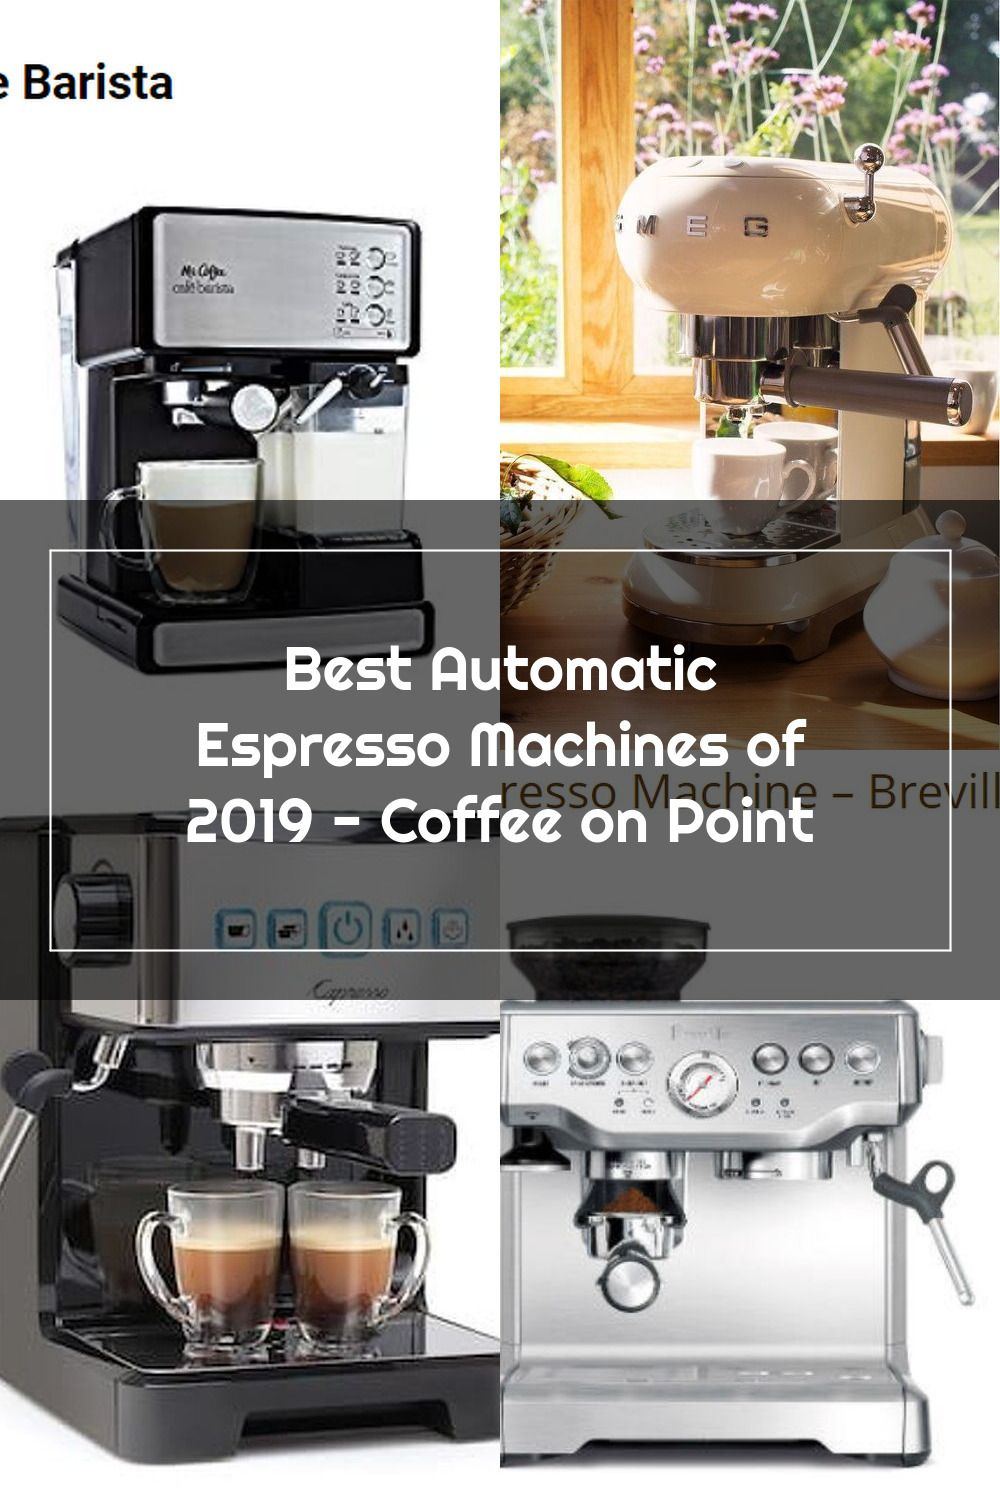 Best Automatic Espresso Machines of 2019 - Coffee on Point ...